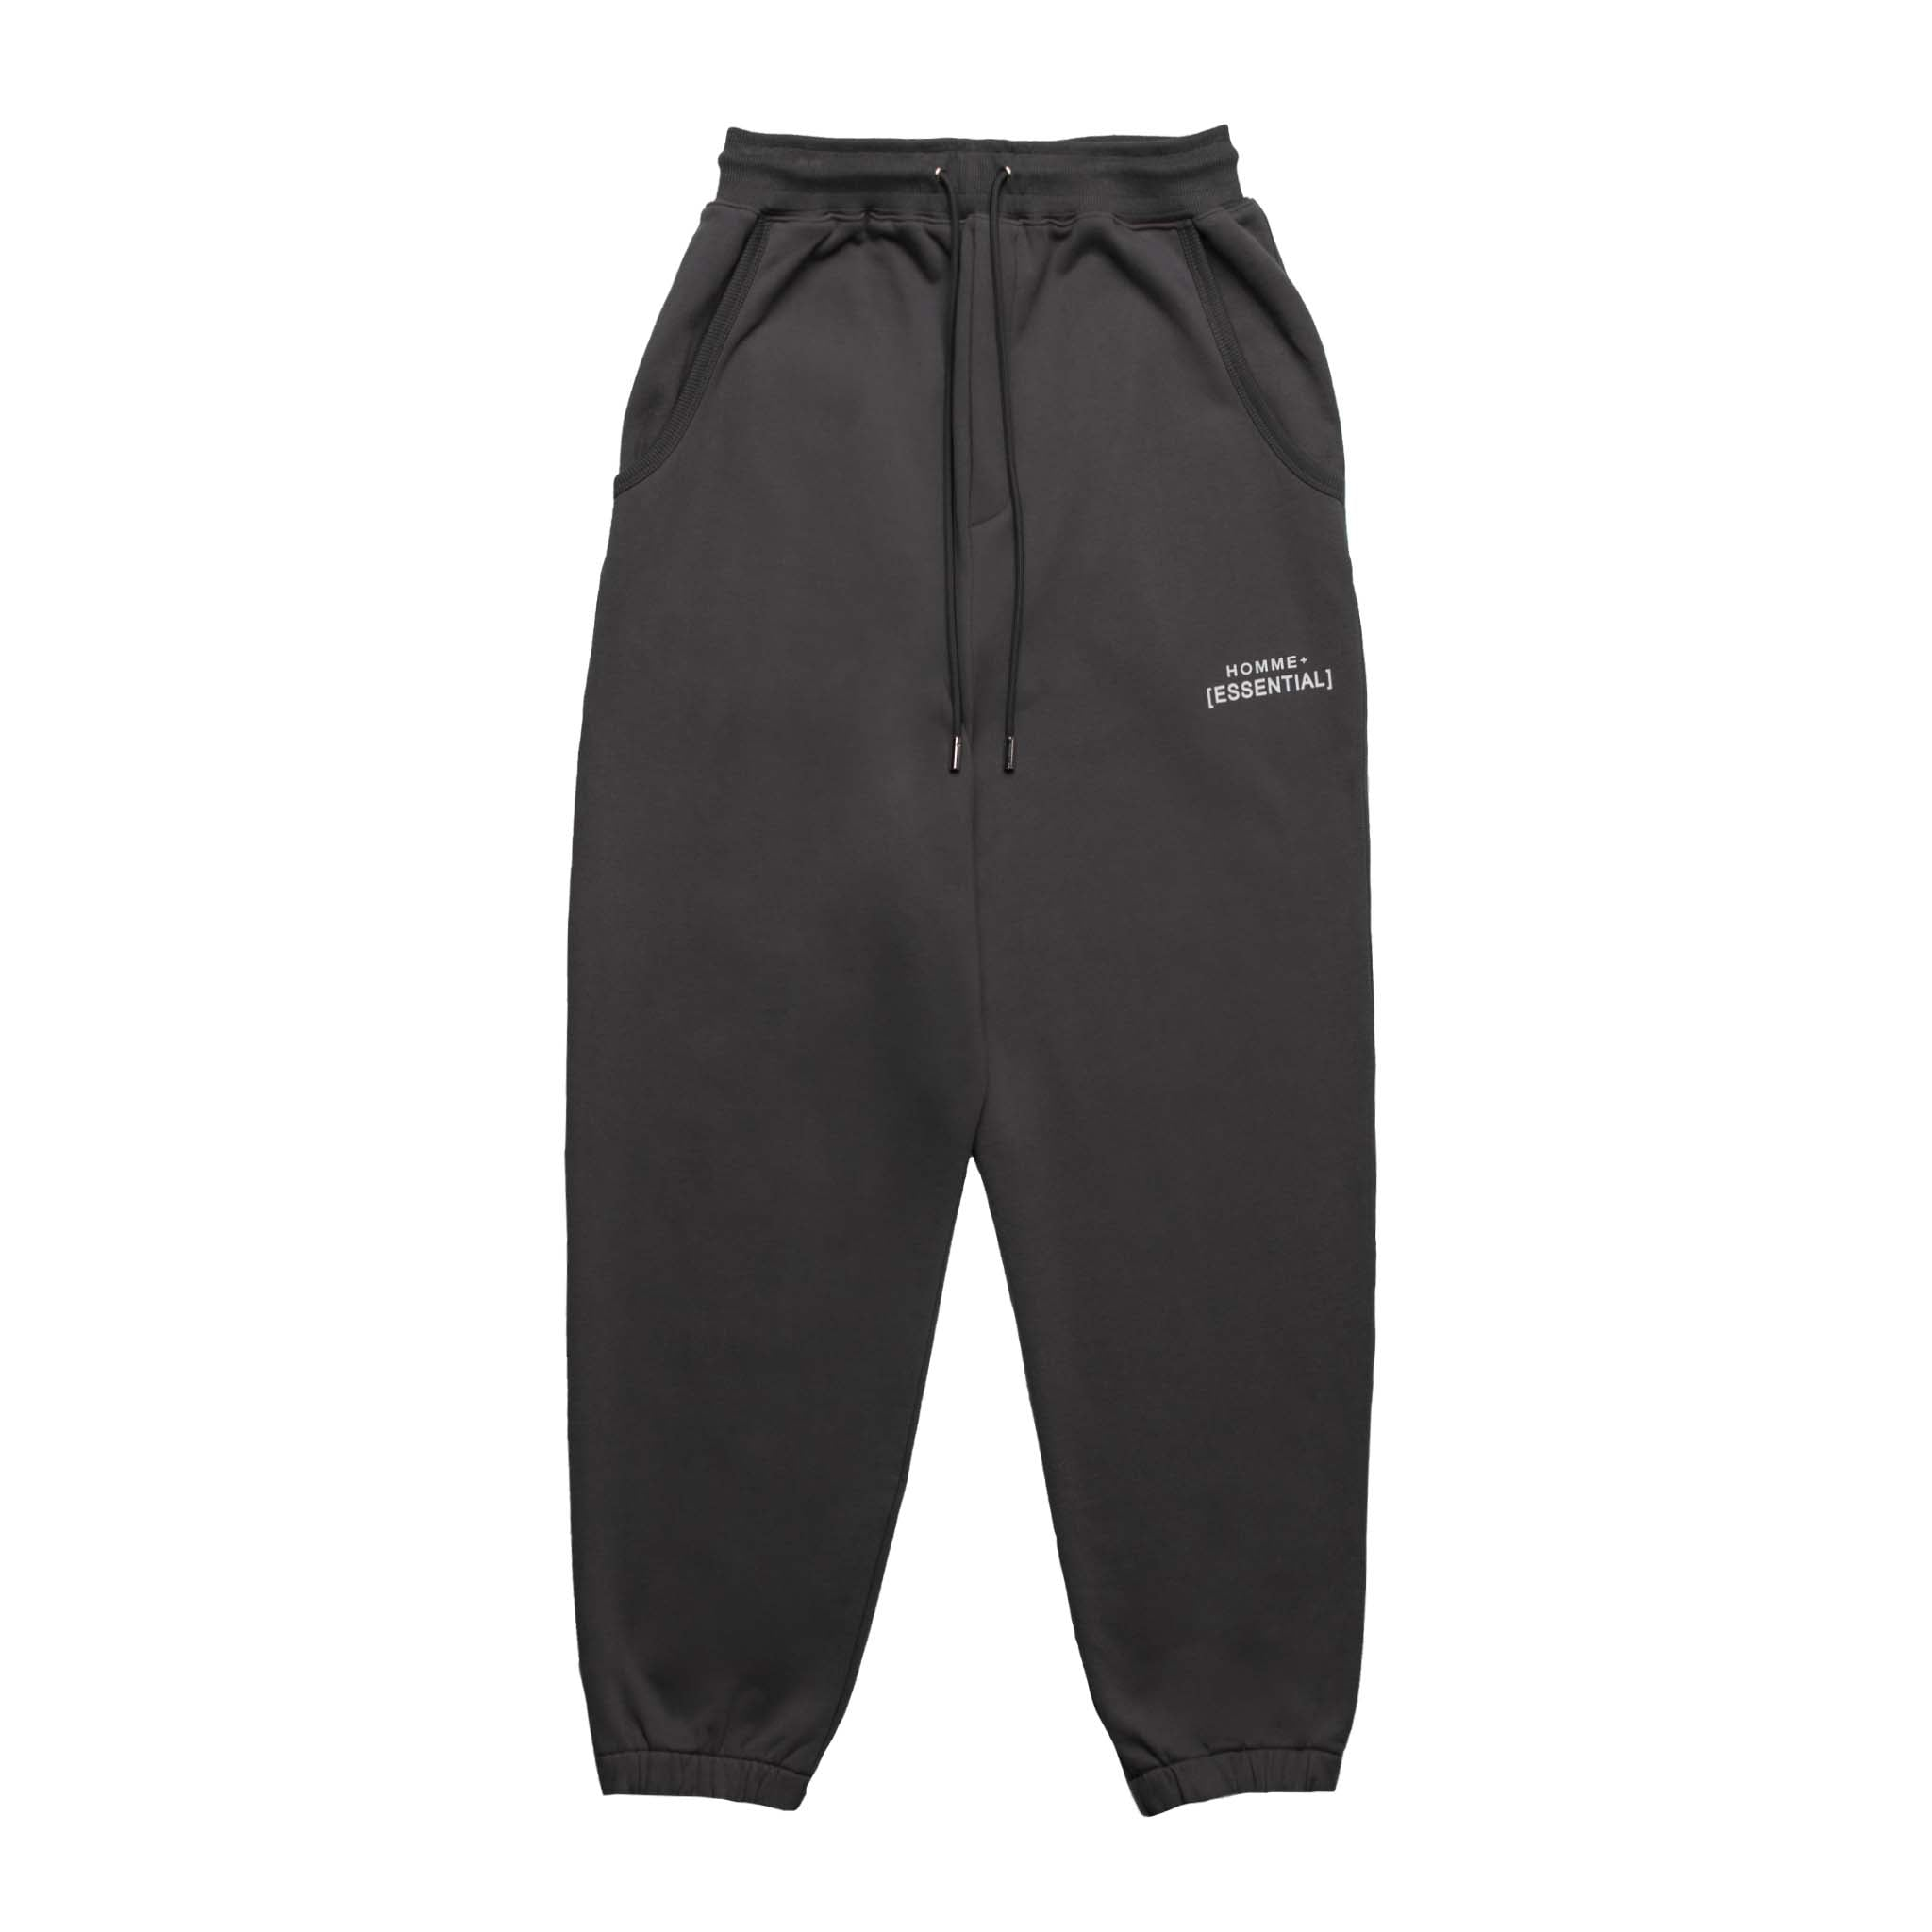 HOMME+ 'ESSENTIAL' Knit Jogger Charcoal